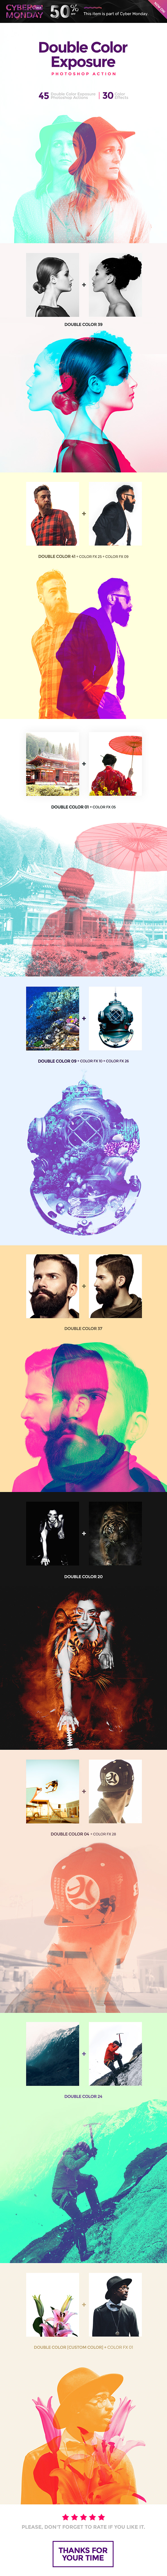 Double Color Exposure Photoshop Action - Photo Effects Actions